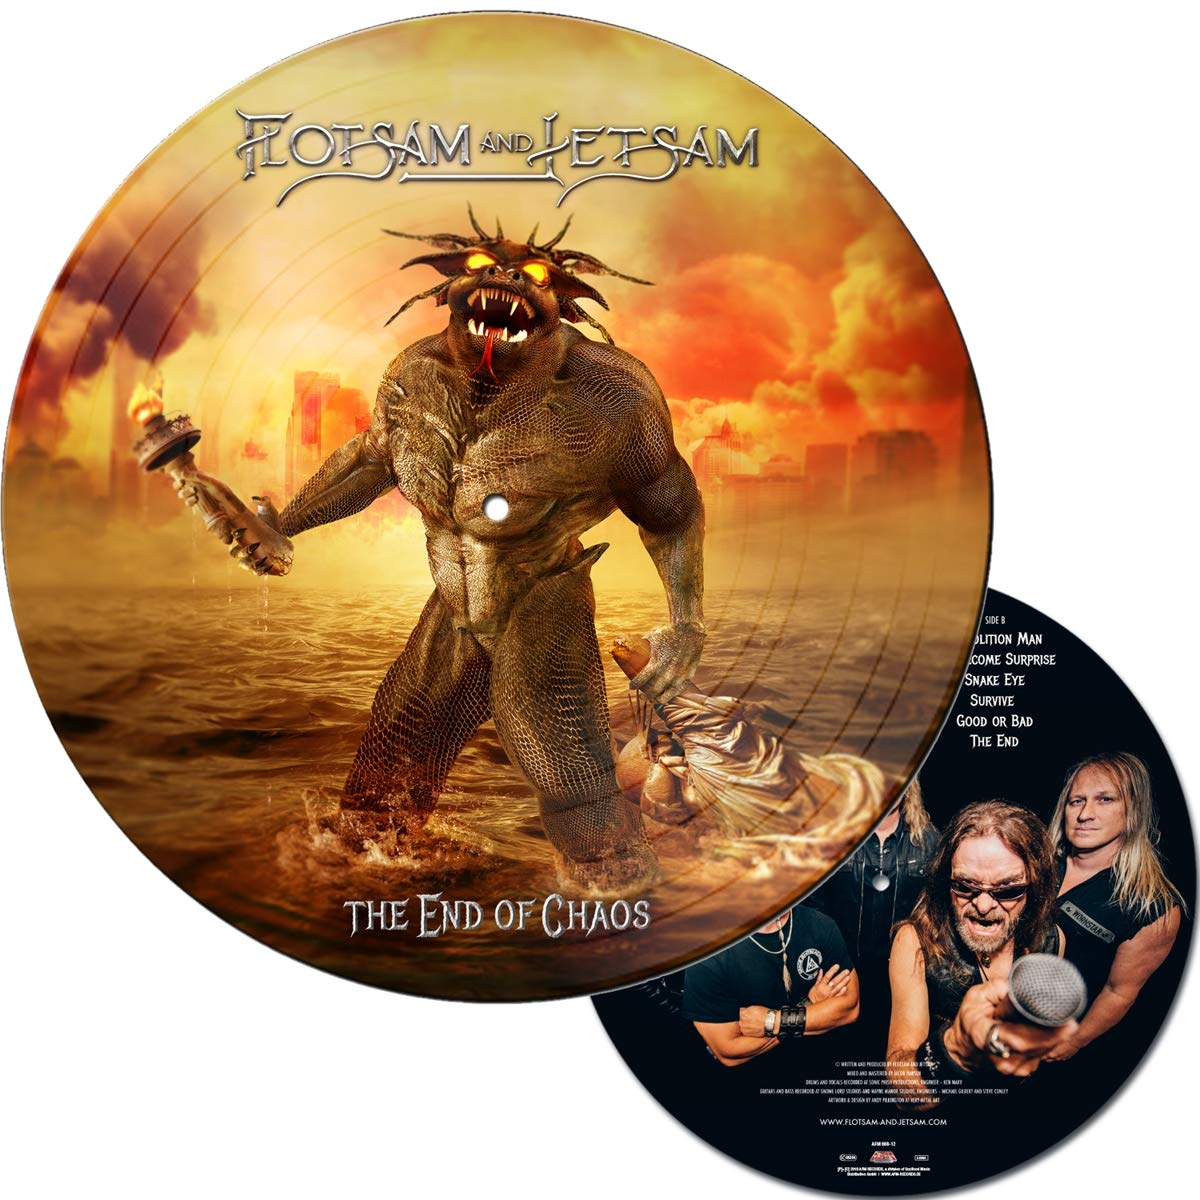 Flotsam & Jetsam - The End Of Chaos [Limited Edition Picture Disc LP]